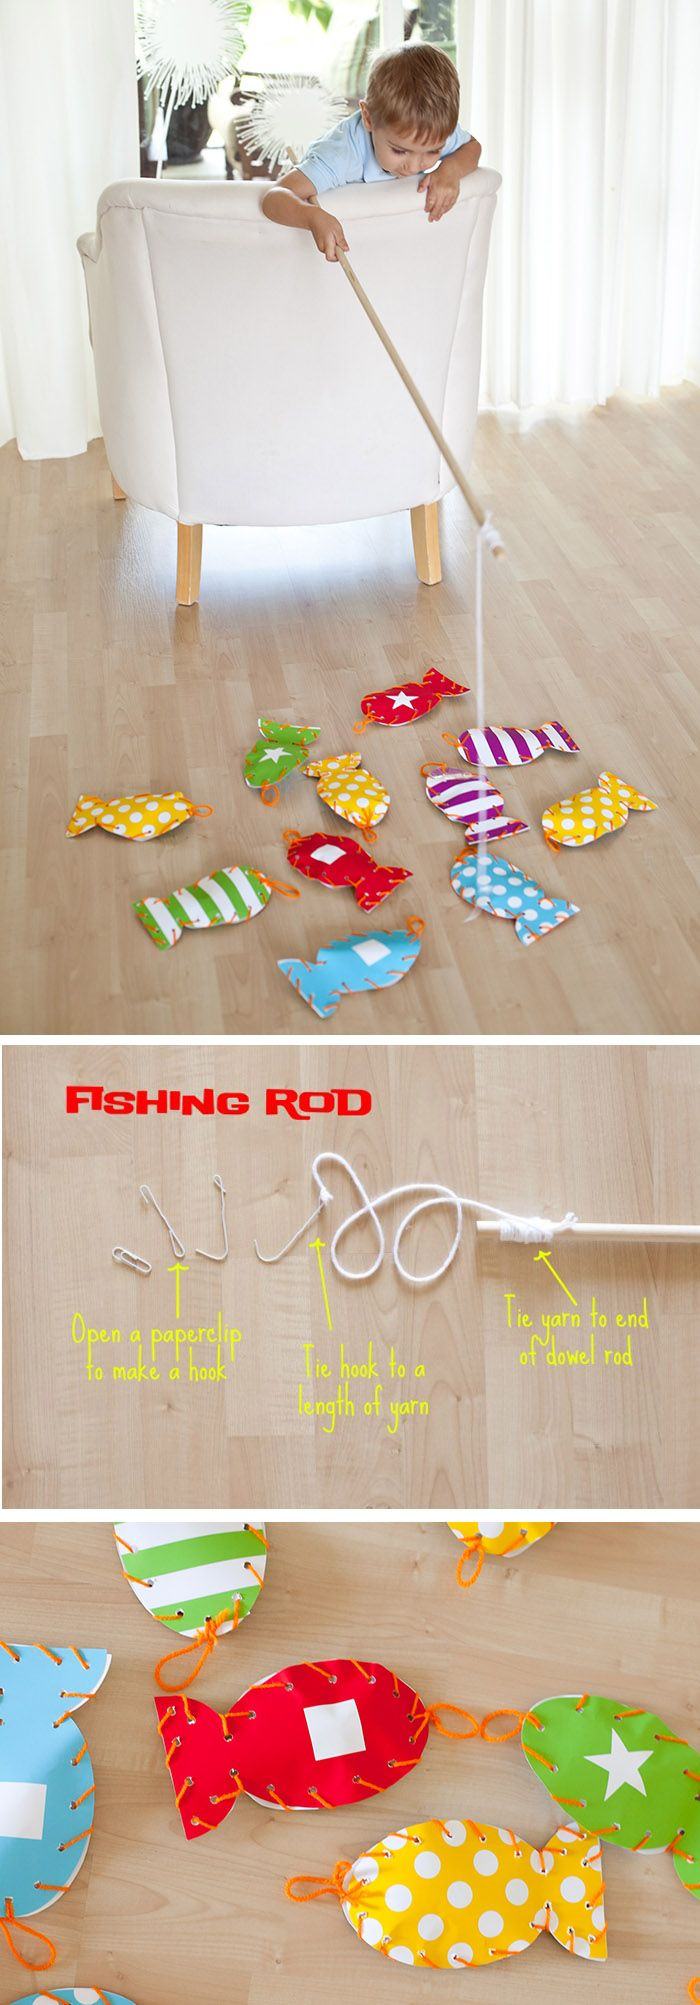 Oh I remember this game. Yes, how lovely making a fabric set and putting some magnets inside... Too good! Gone Fishing - DIY fishing game for kids. Nx